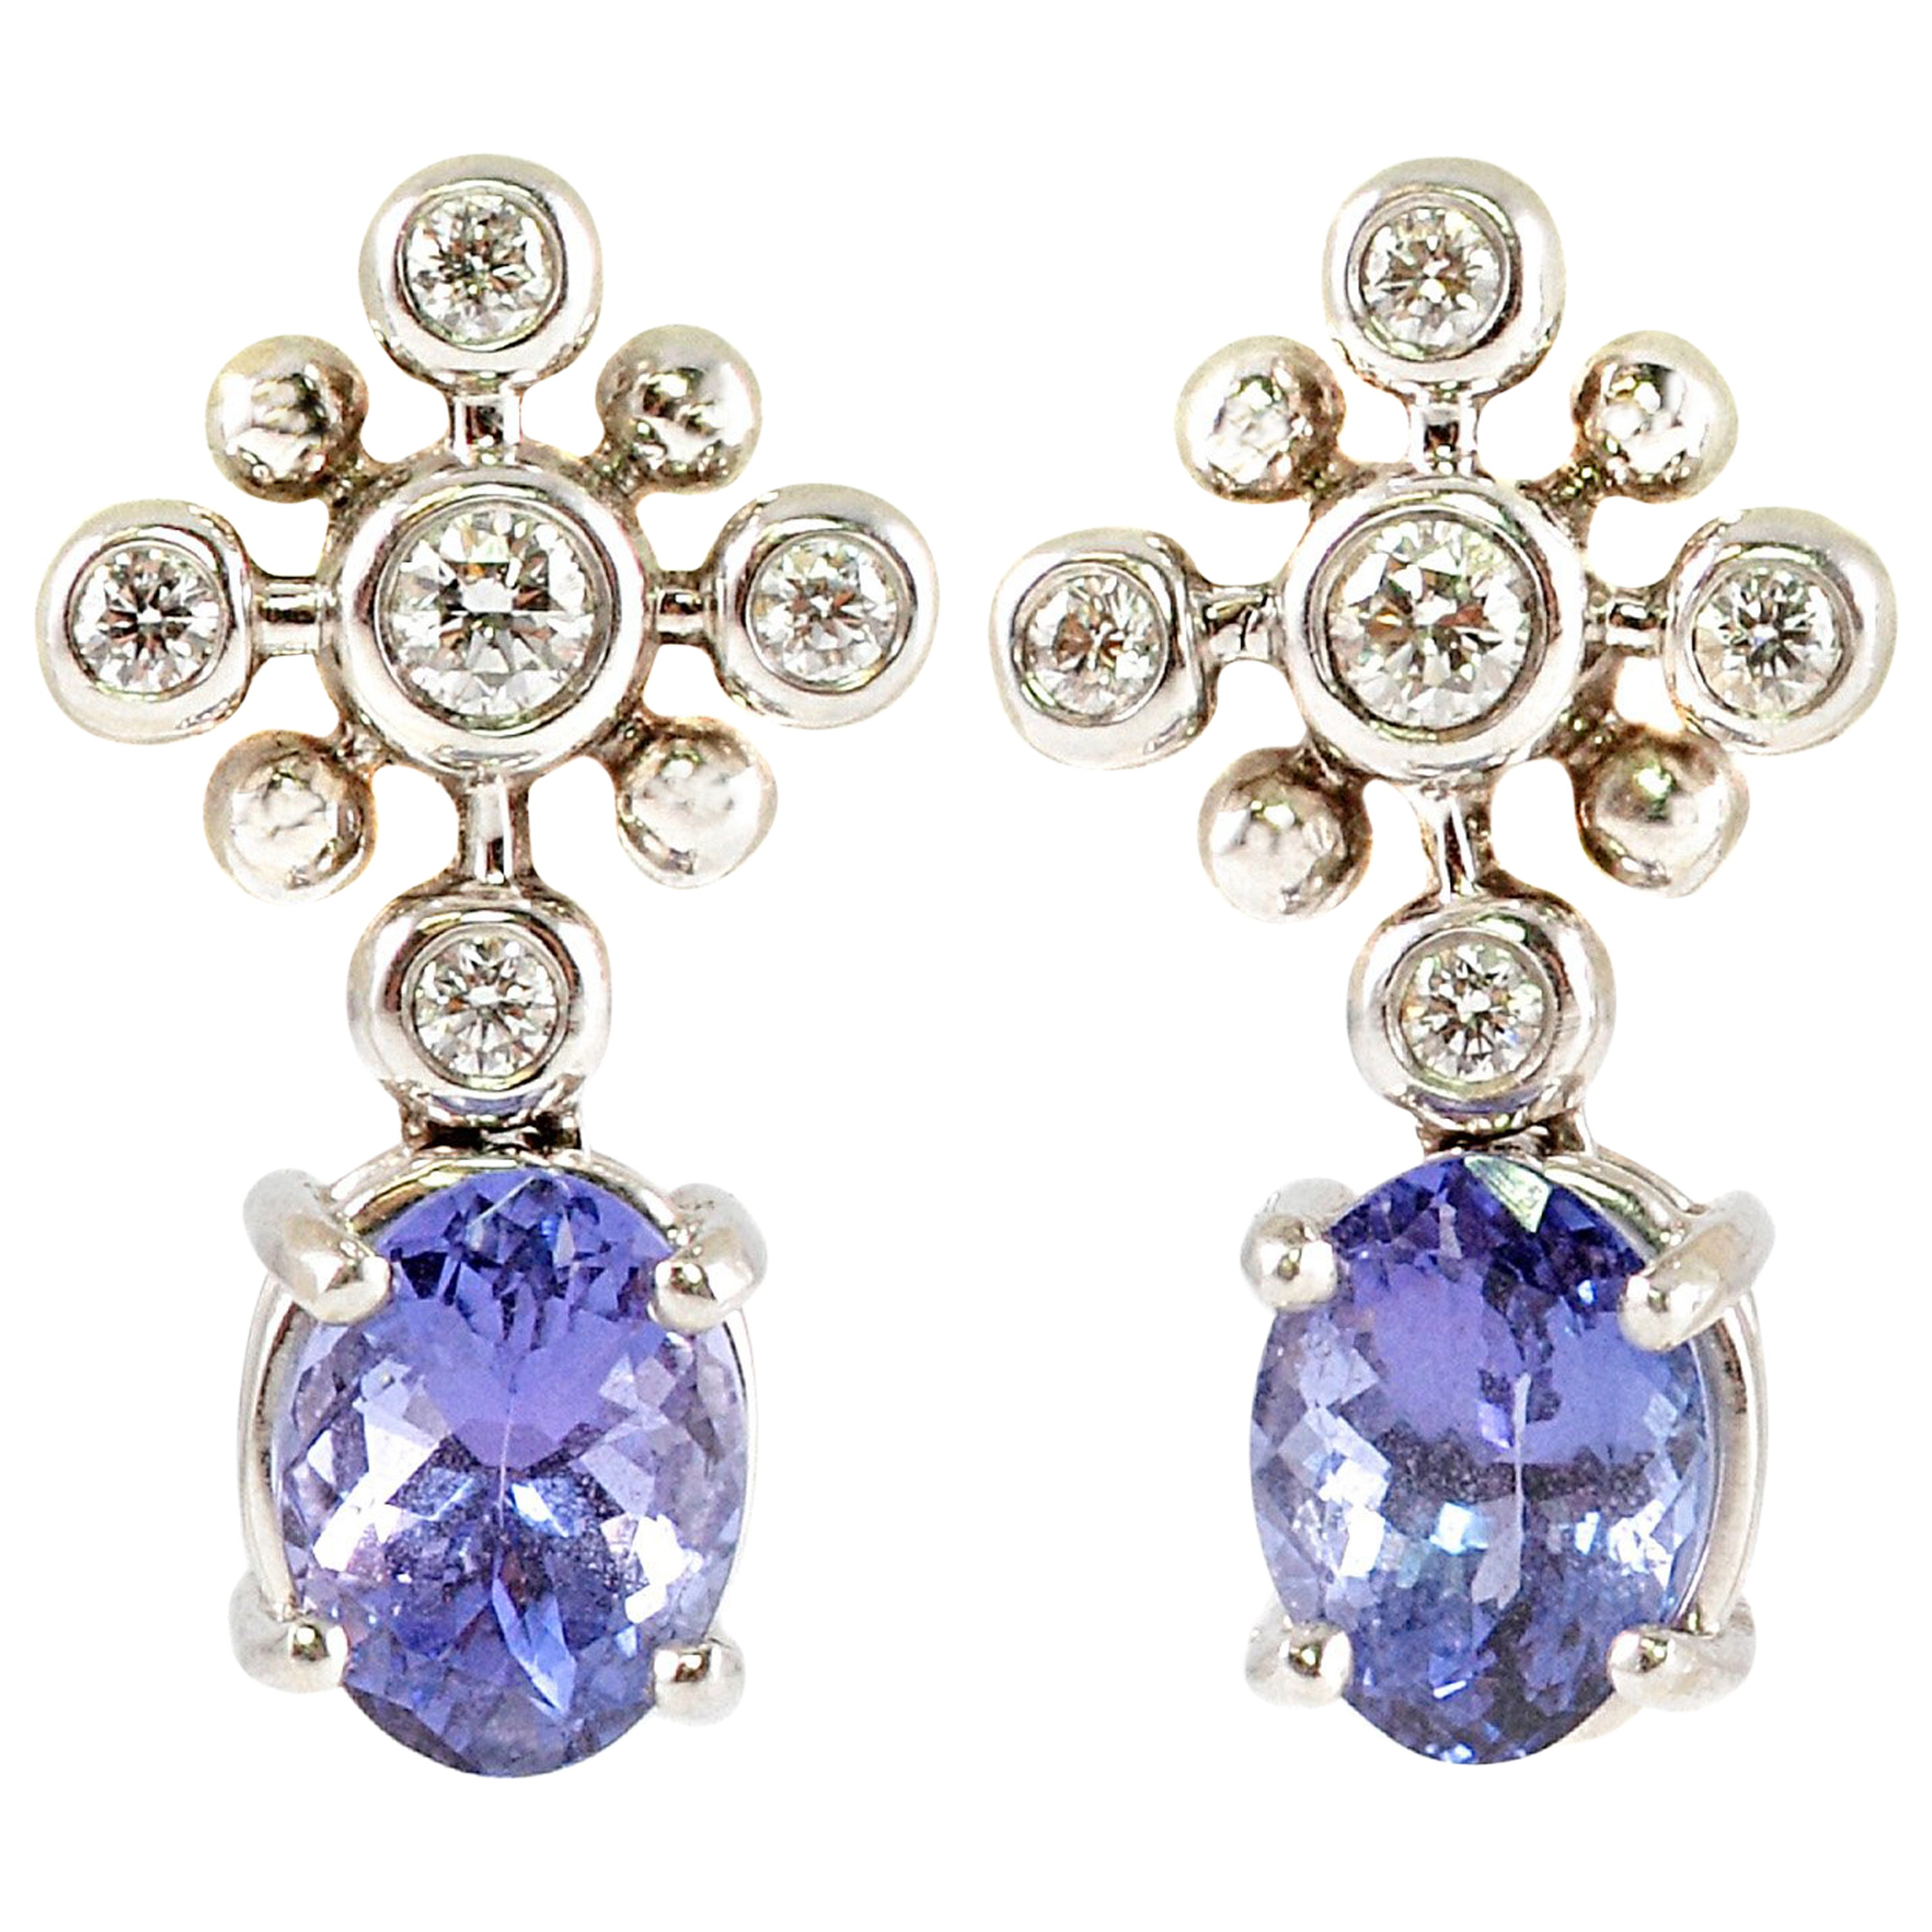 5b1ca4b70 Tiffany and Co. 2.50 Carat Tanzanite Diamond Plat Earrings